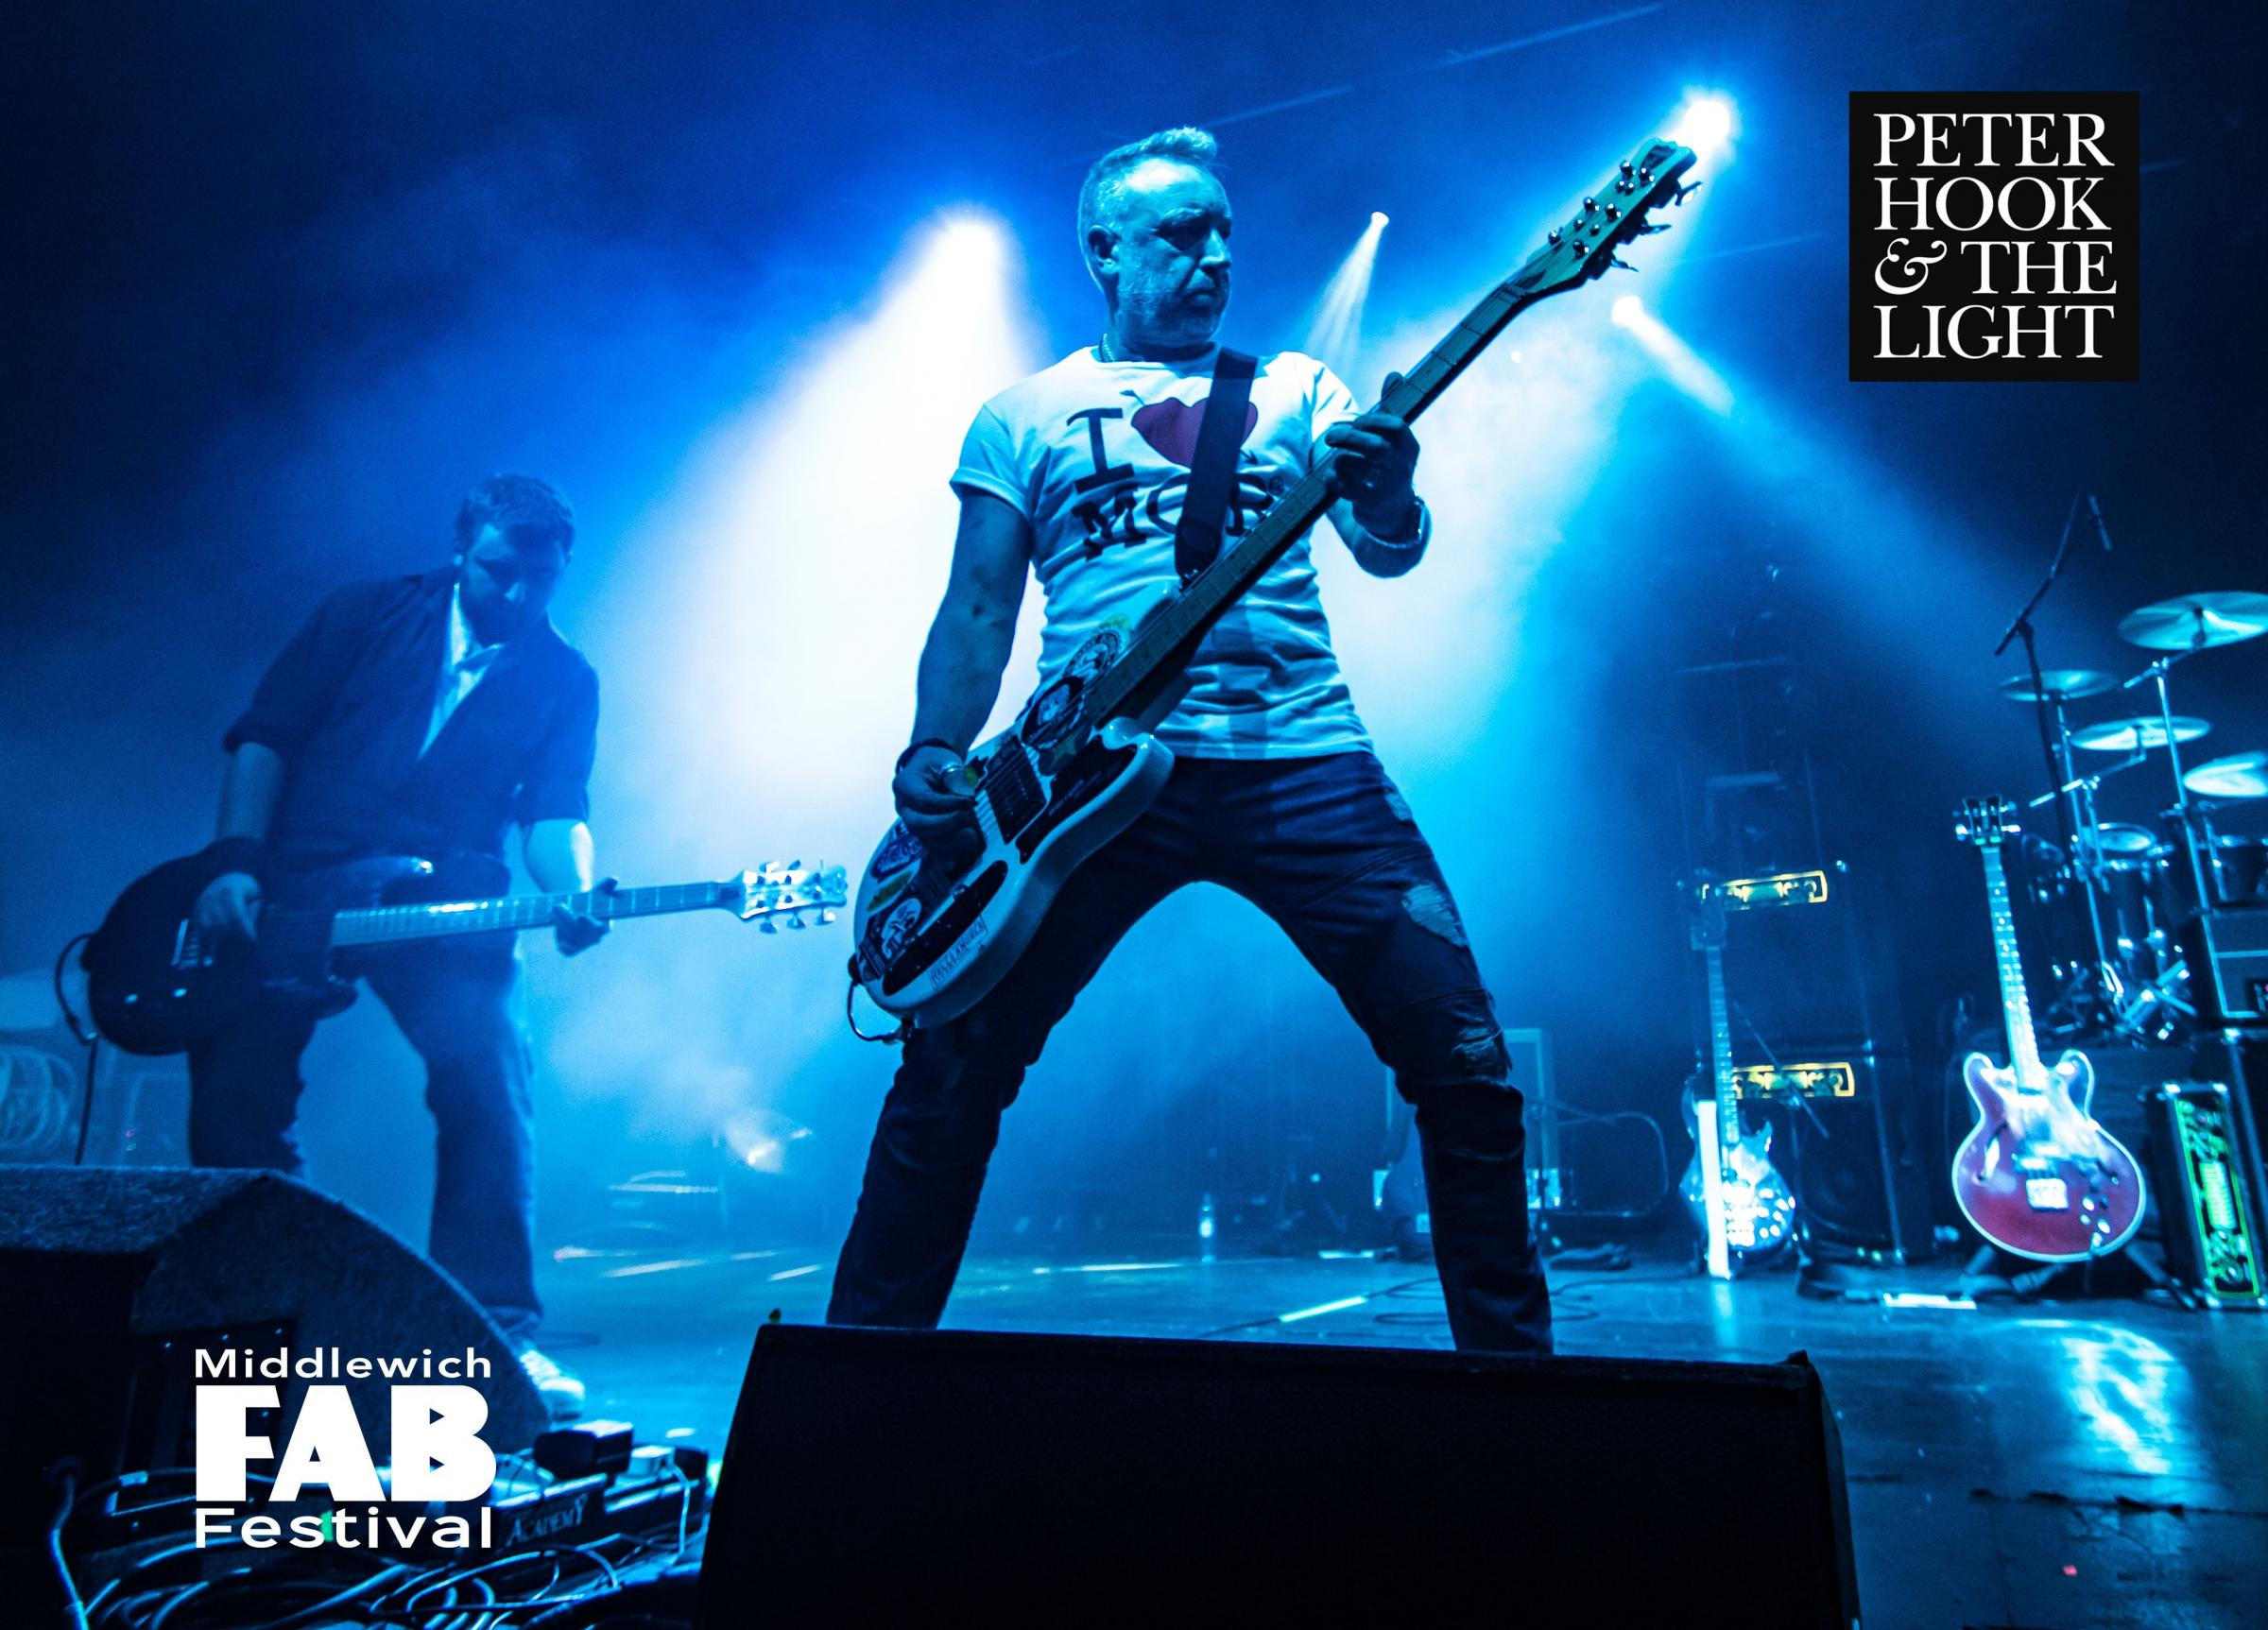 Peter Hook and the Light will be headlining this year's festival.